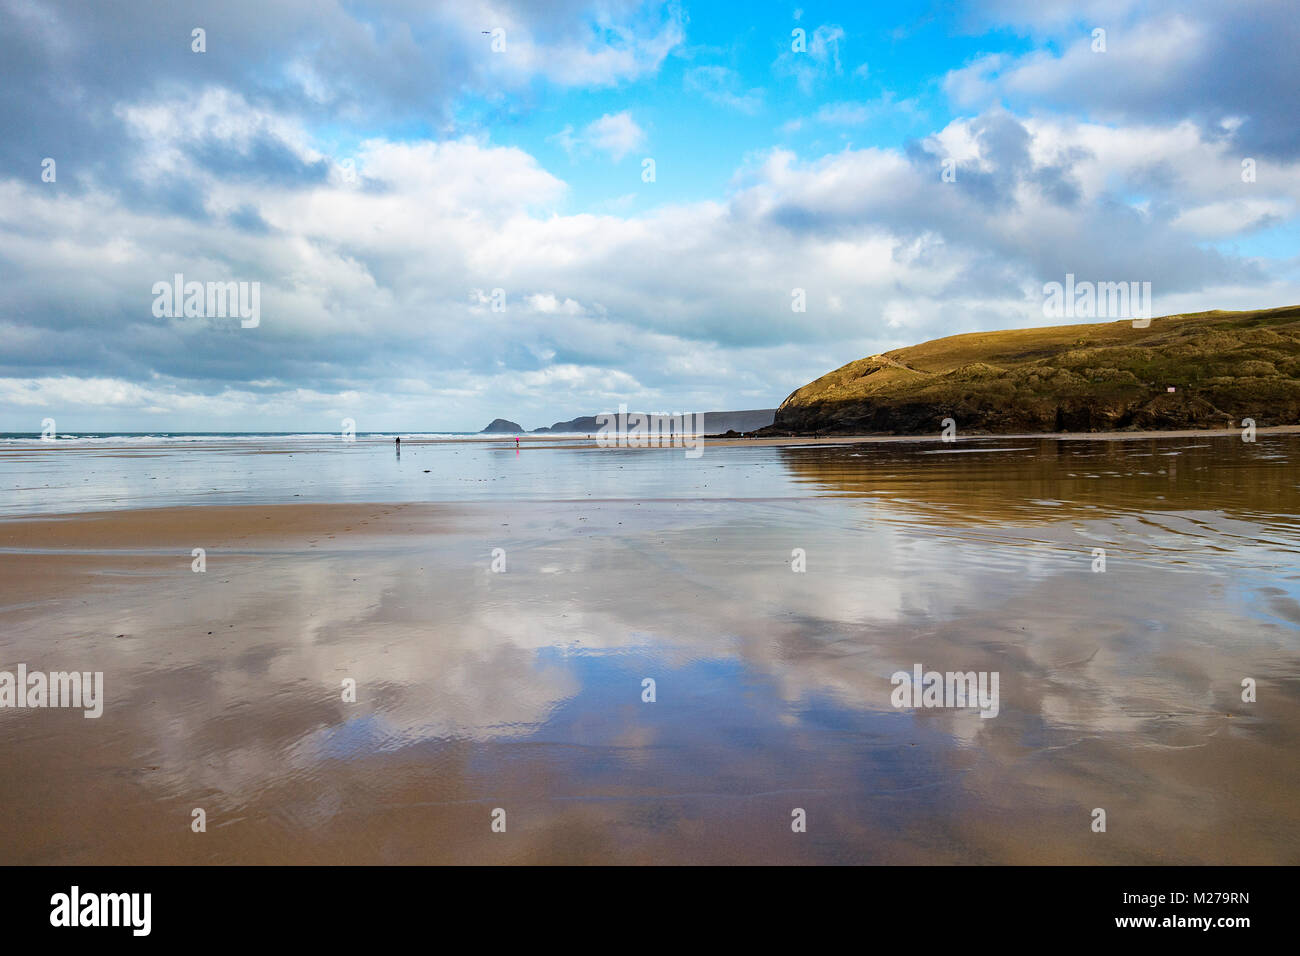 winter low tide at perranporth beach, cornwall, england, uk. - Stock Image